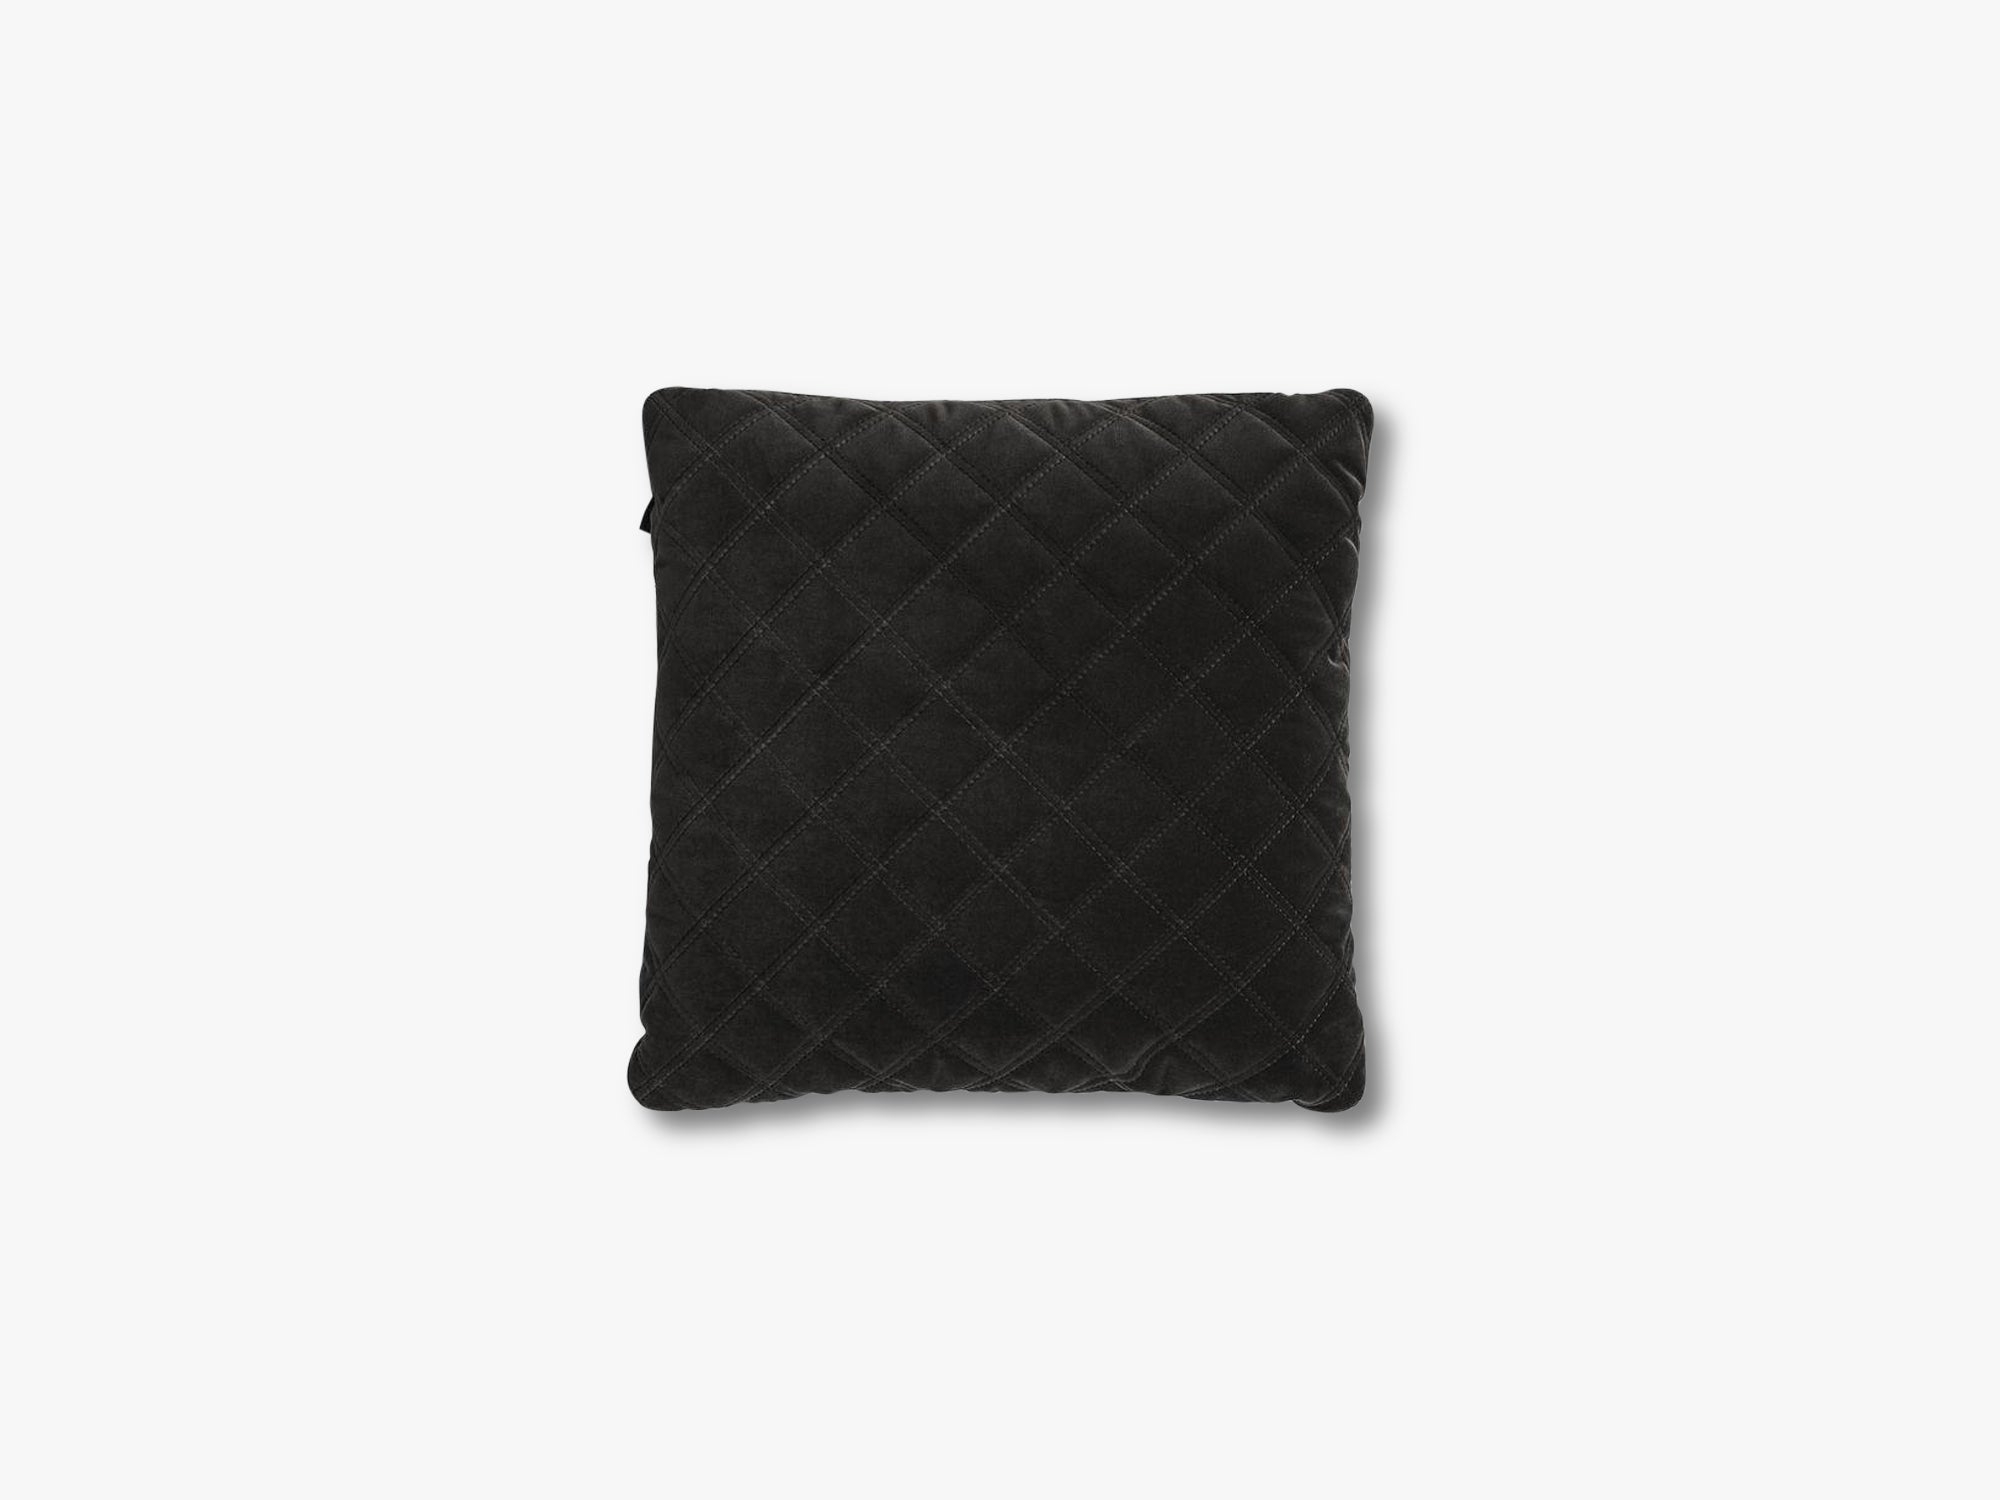 Velvet Pillow, dark grey fra Design By Us